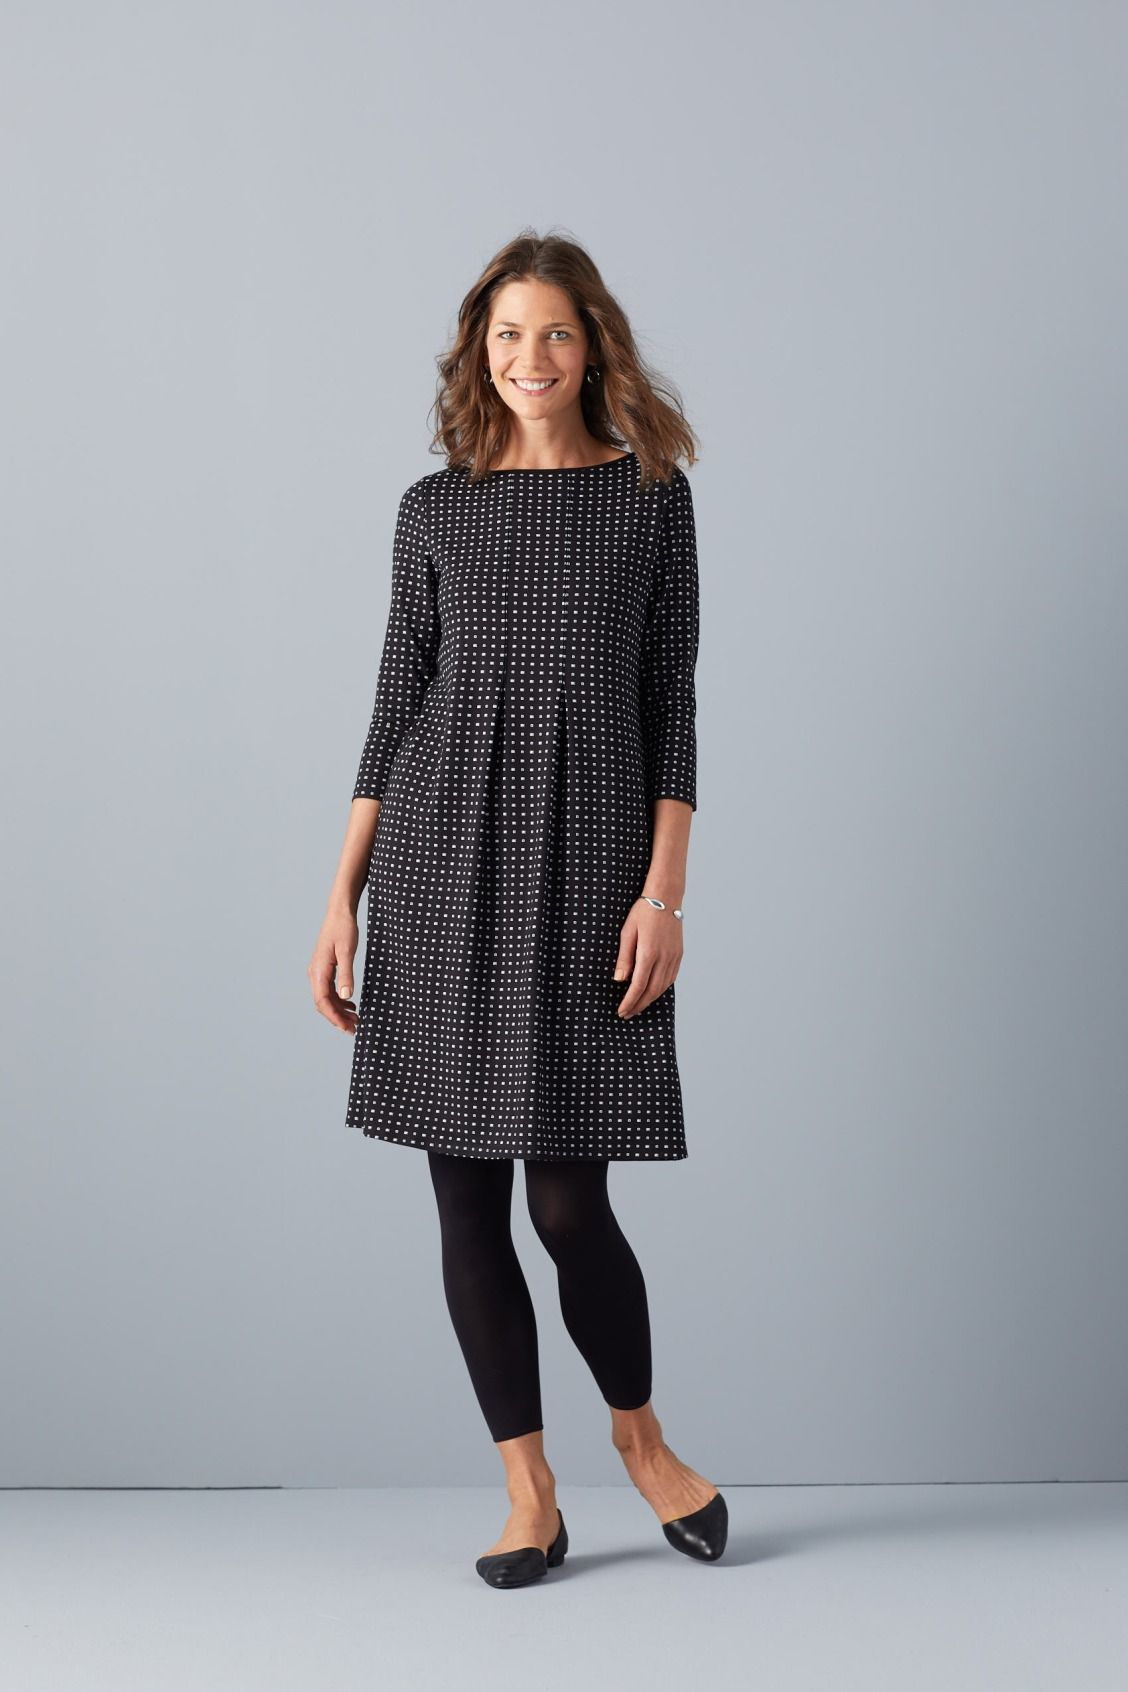 Wearever Center, Pleat Dress paired with the Ankle Length